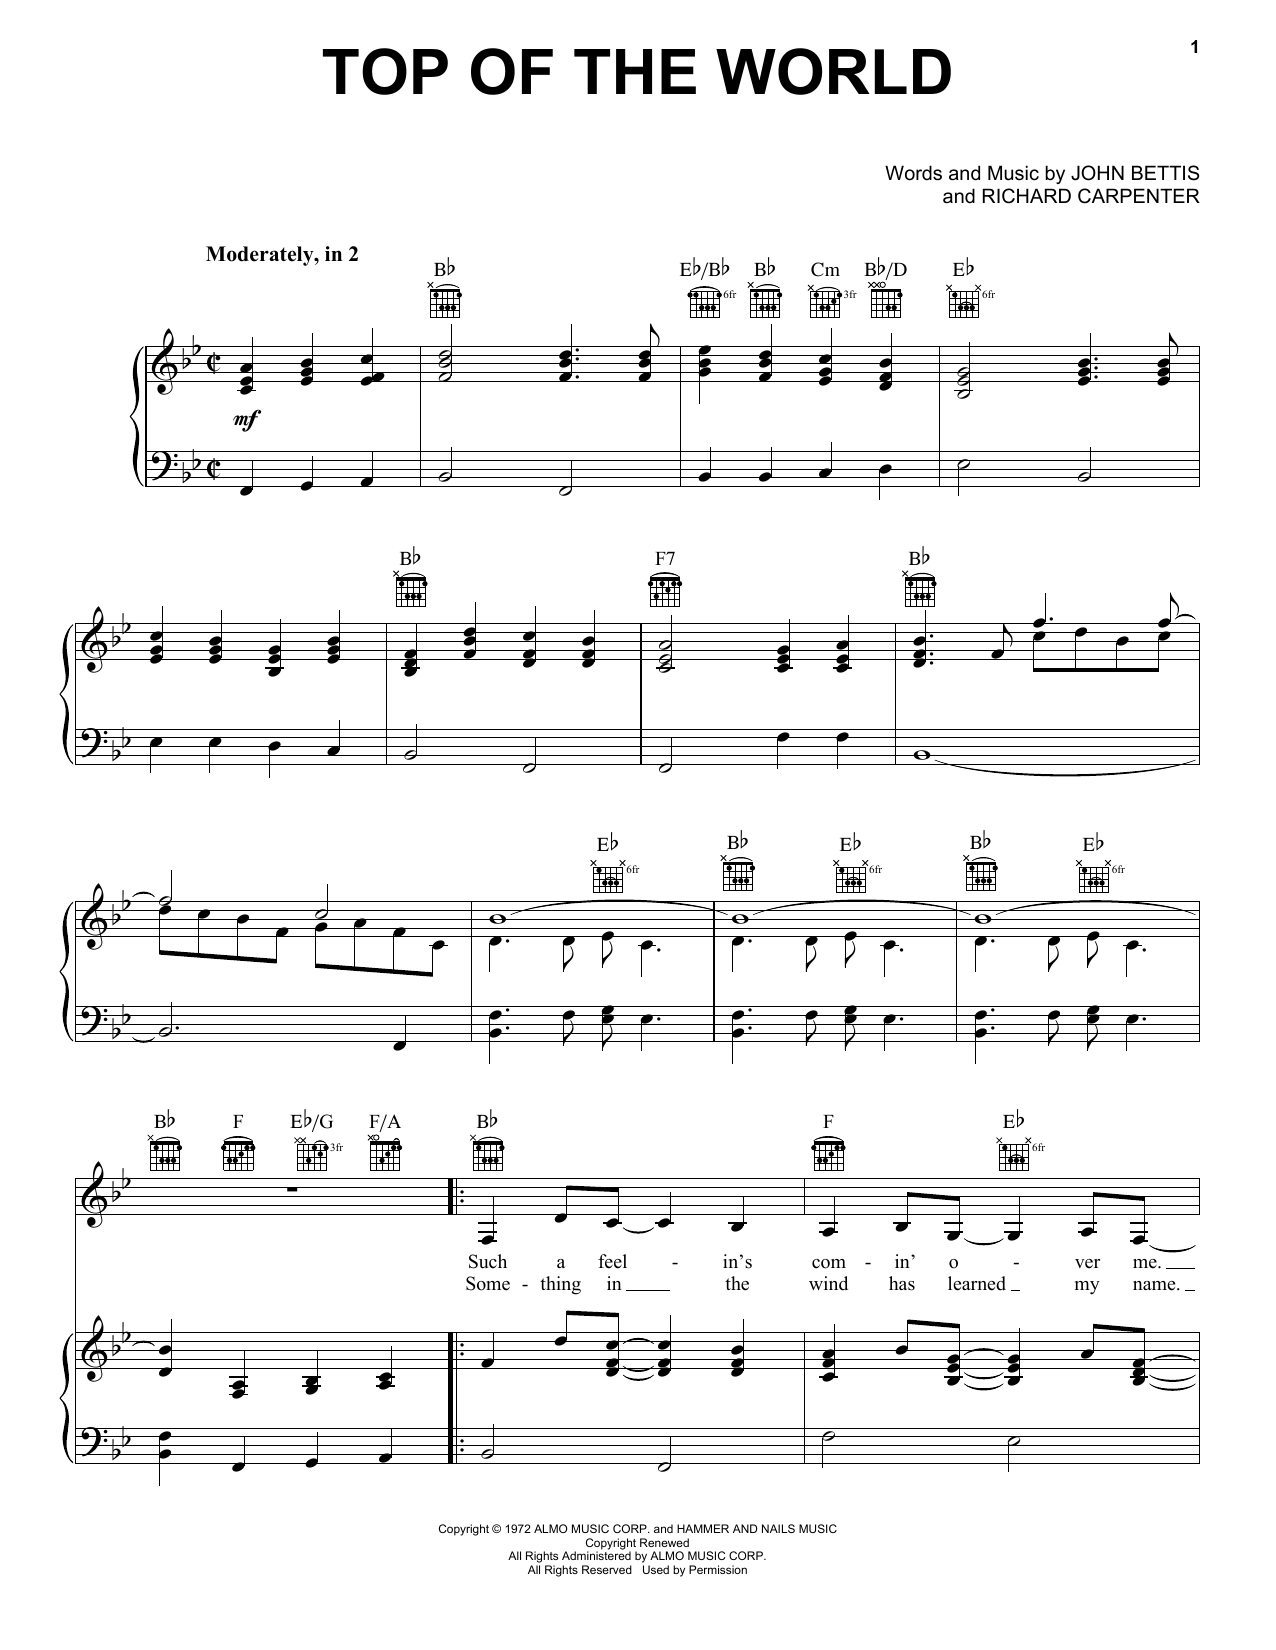 Carpenters Top Of The World sheet music notes and chords